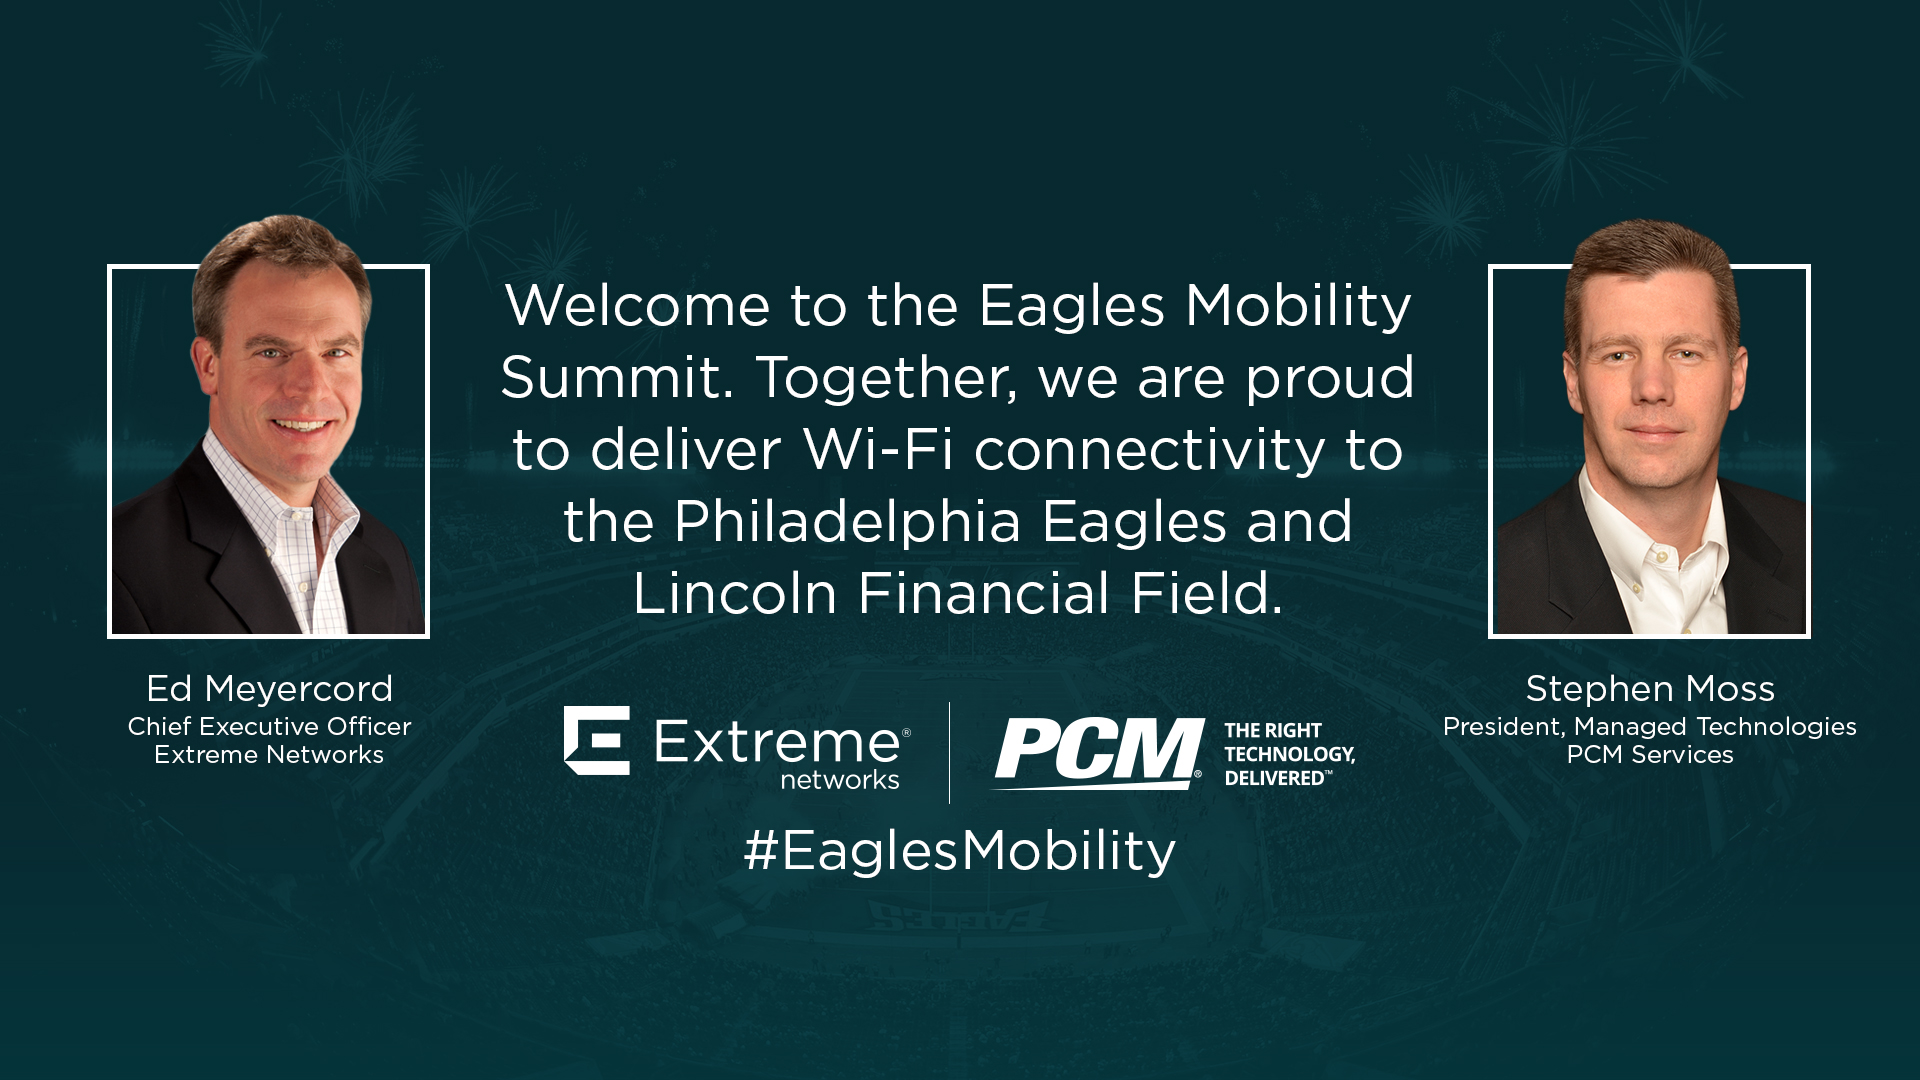 9834-Eagles-Mobility-Summit_Club-Monitors-Welcome-Slide